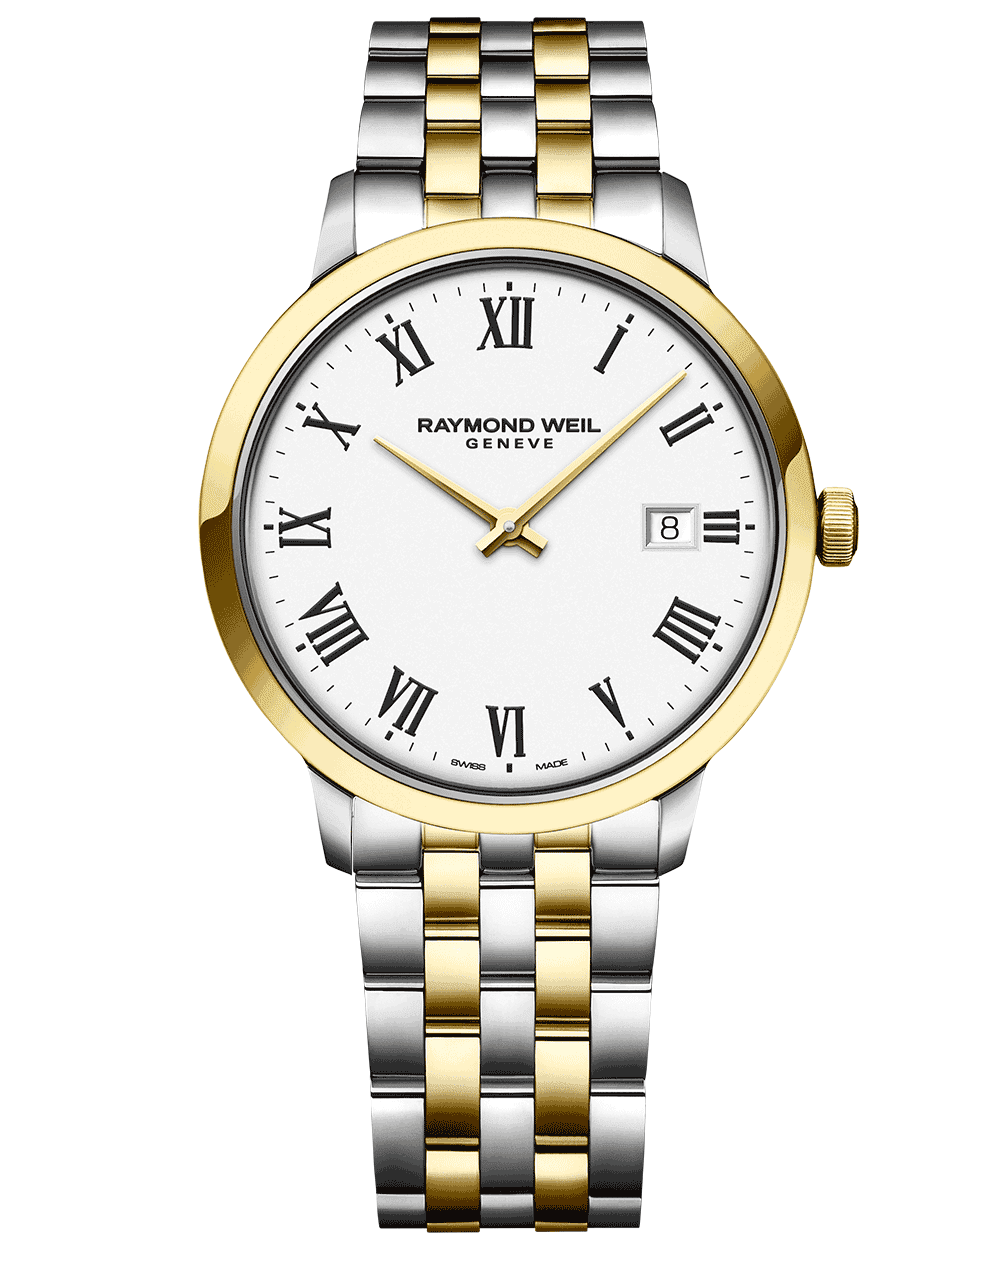 Toccata Men's Classic Two-tone White Dial Quartz Watch 39 mm 5485-STP-00300